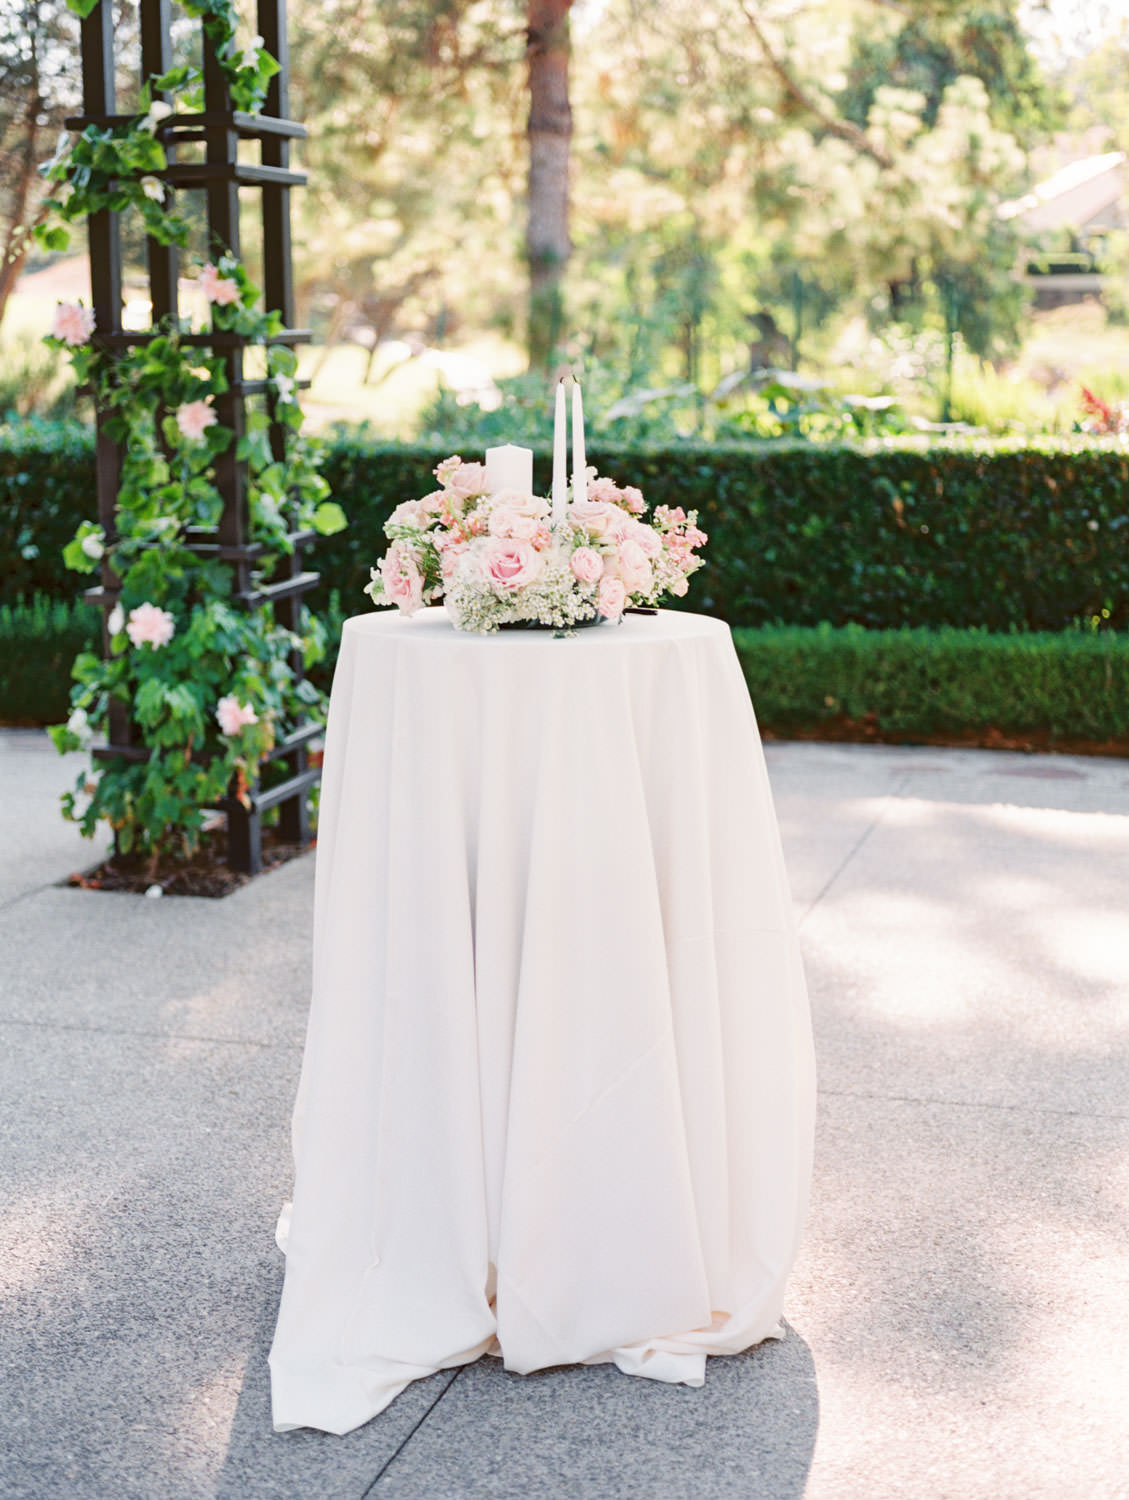 Candle lighting table topped with blush and ivory flowers and ivory candles. Rancho Bernardo Inn Aragon lawn wedding ceremony. Film photo by Cavin Elizabeth Photography